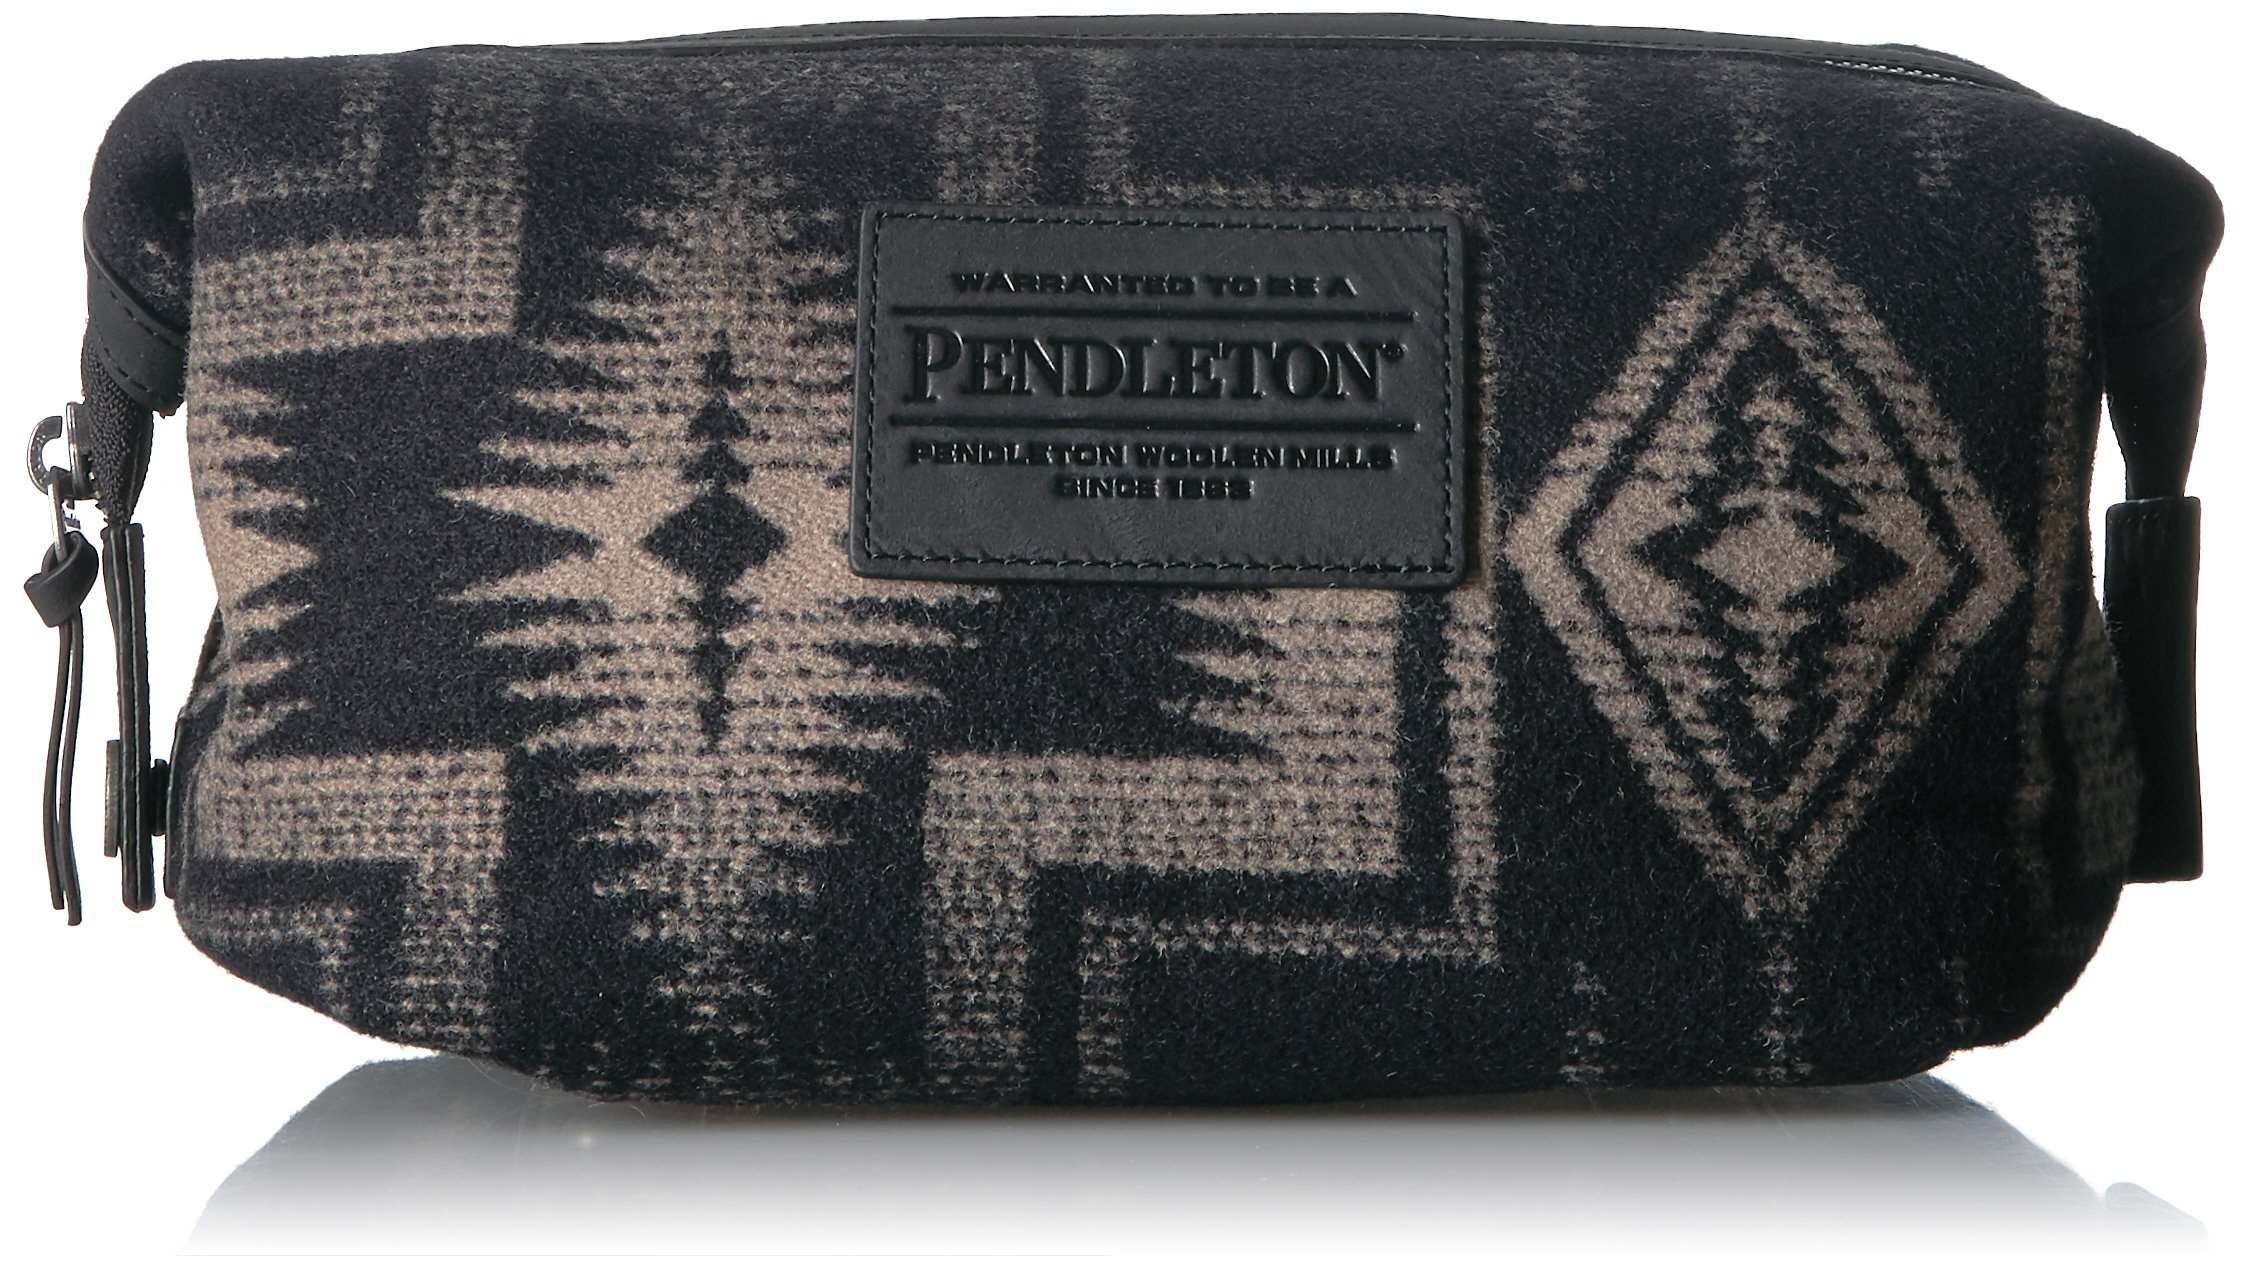 Pendleton Men's Essentials Pouch Bag, Harding tan, One Size